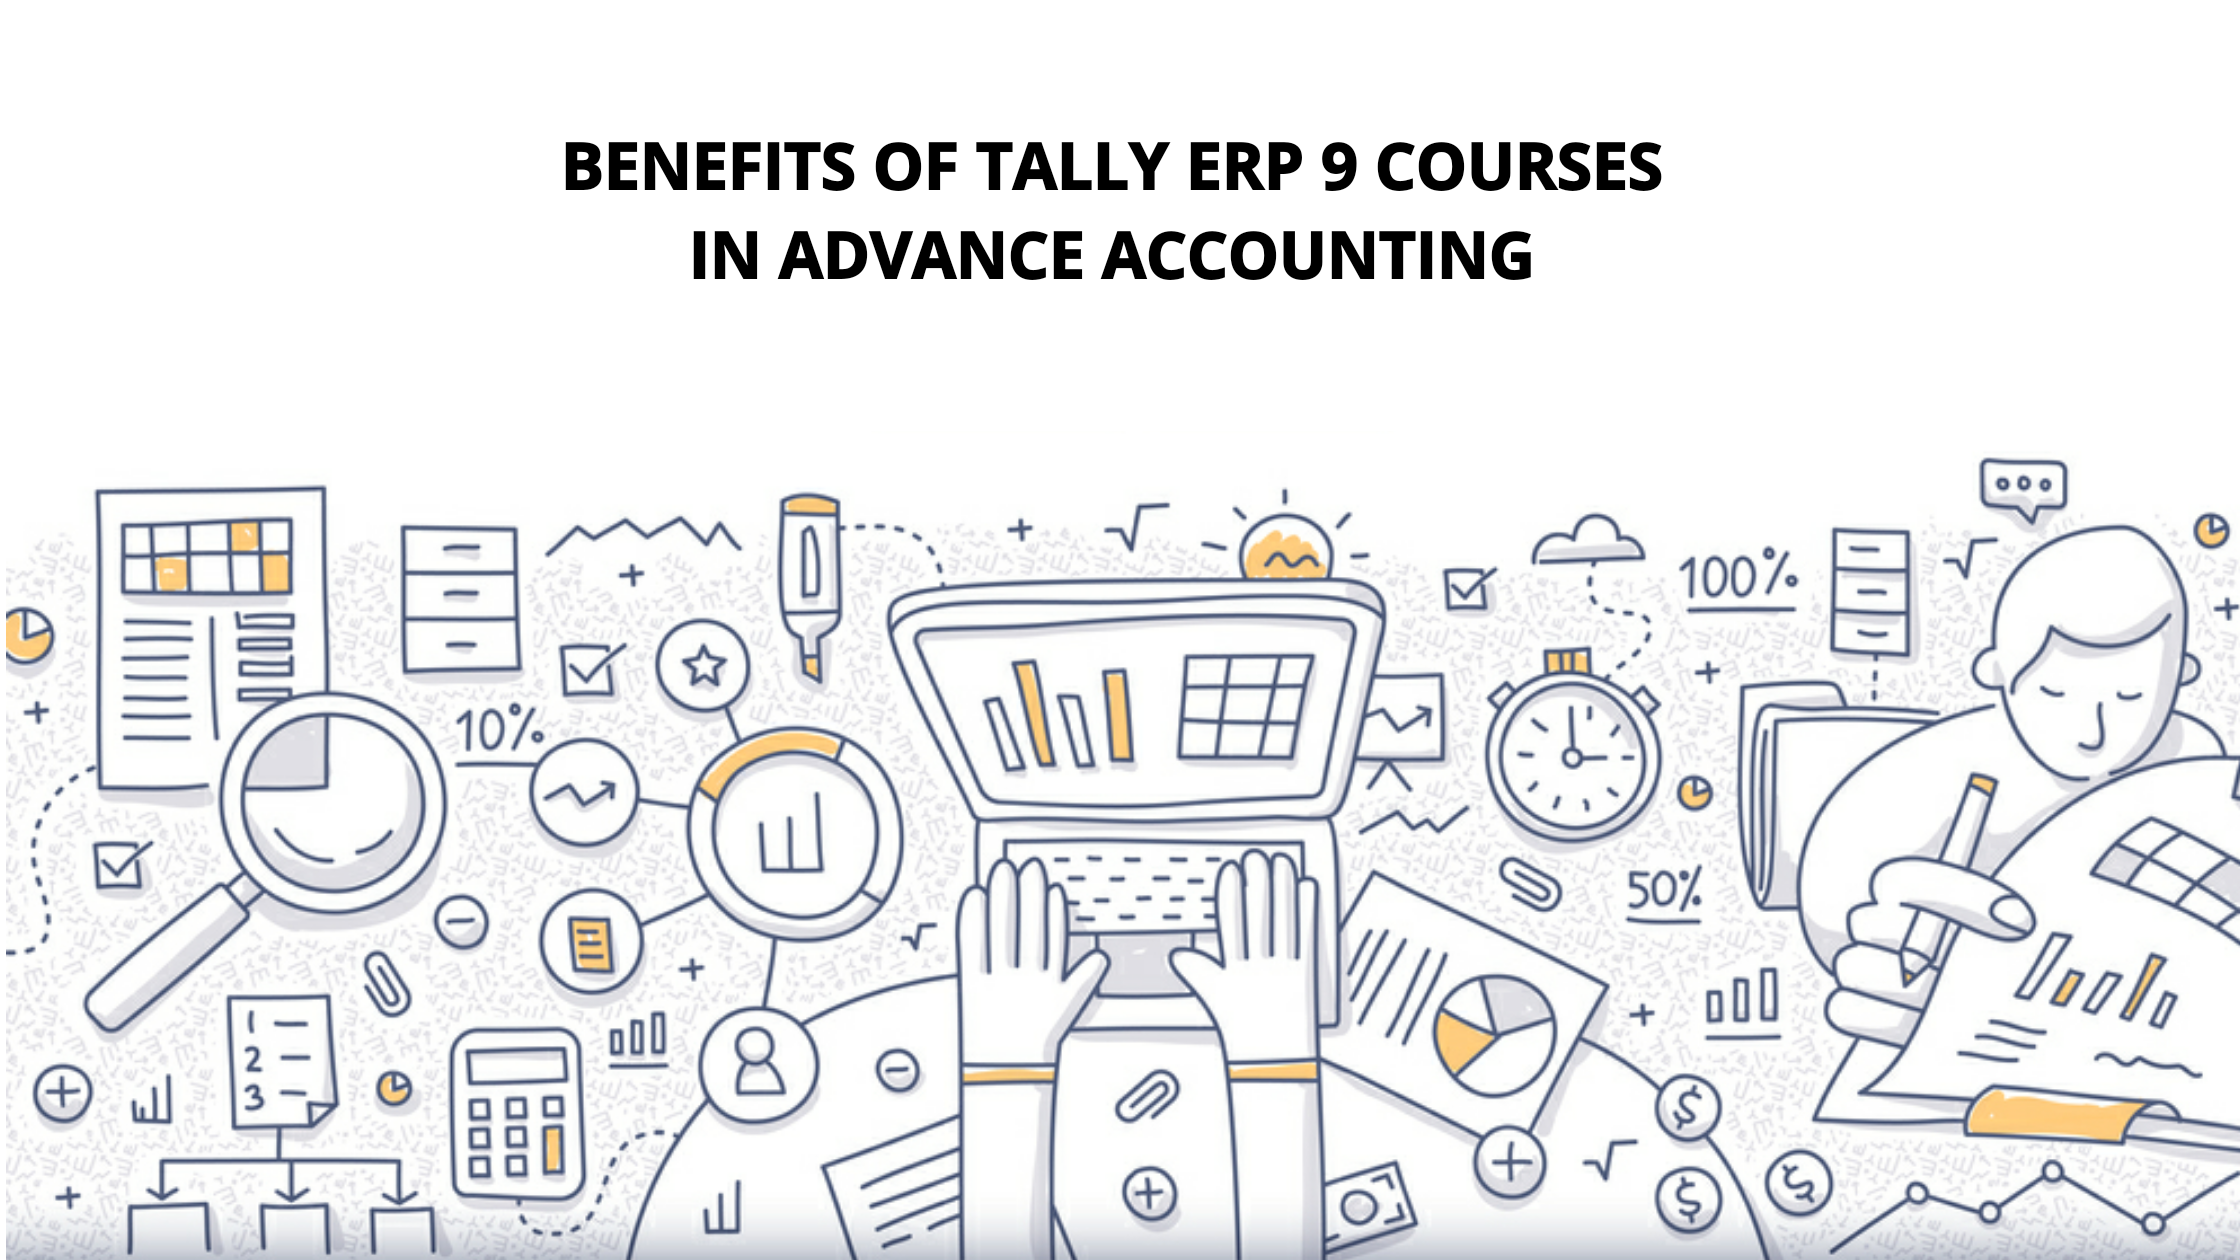 Benefits of Tally ERP 9 Courses In Advance Accounting